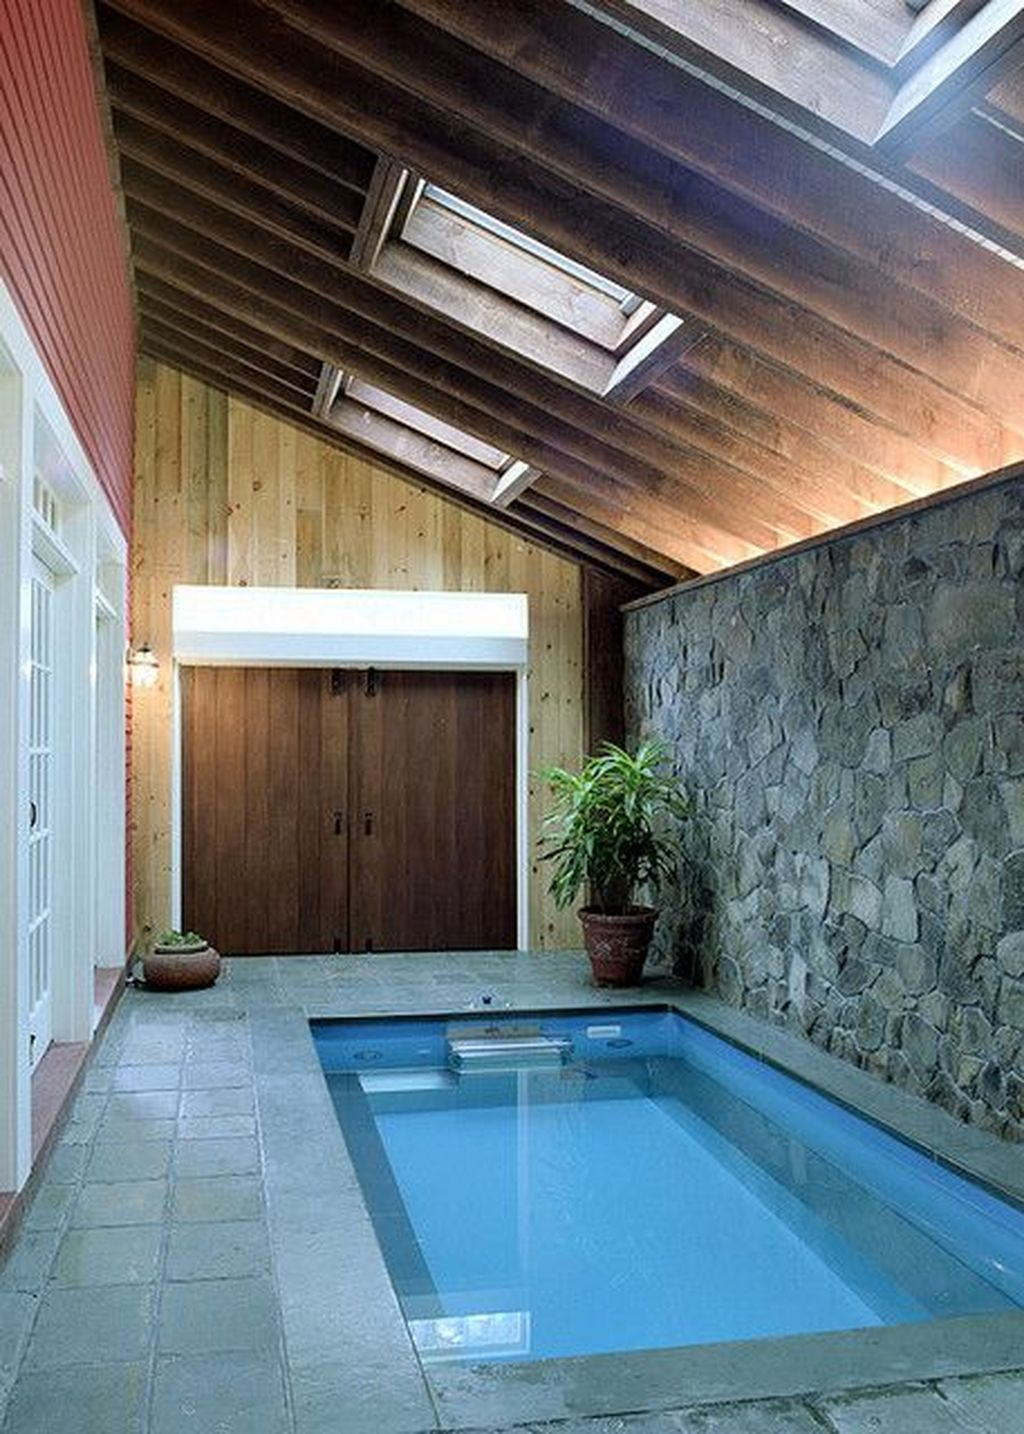 Nice 36 Amazing Small Indoor Swimming Pool Design Ideas More At